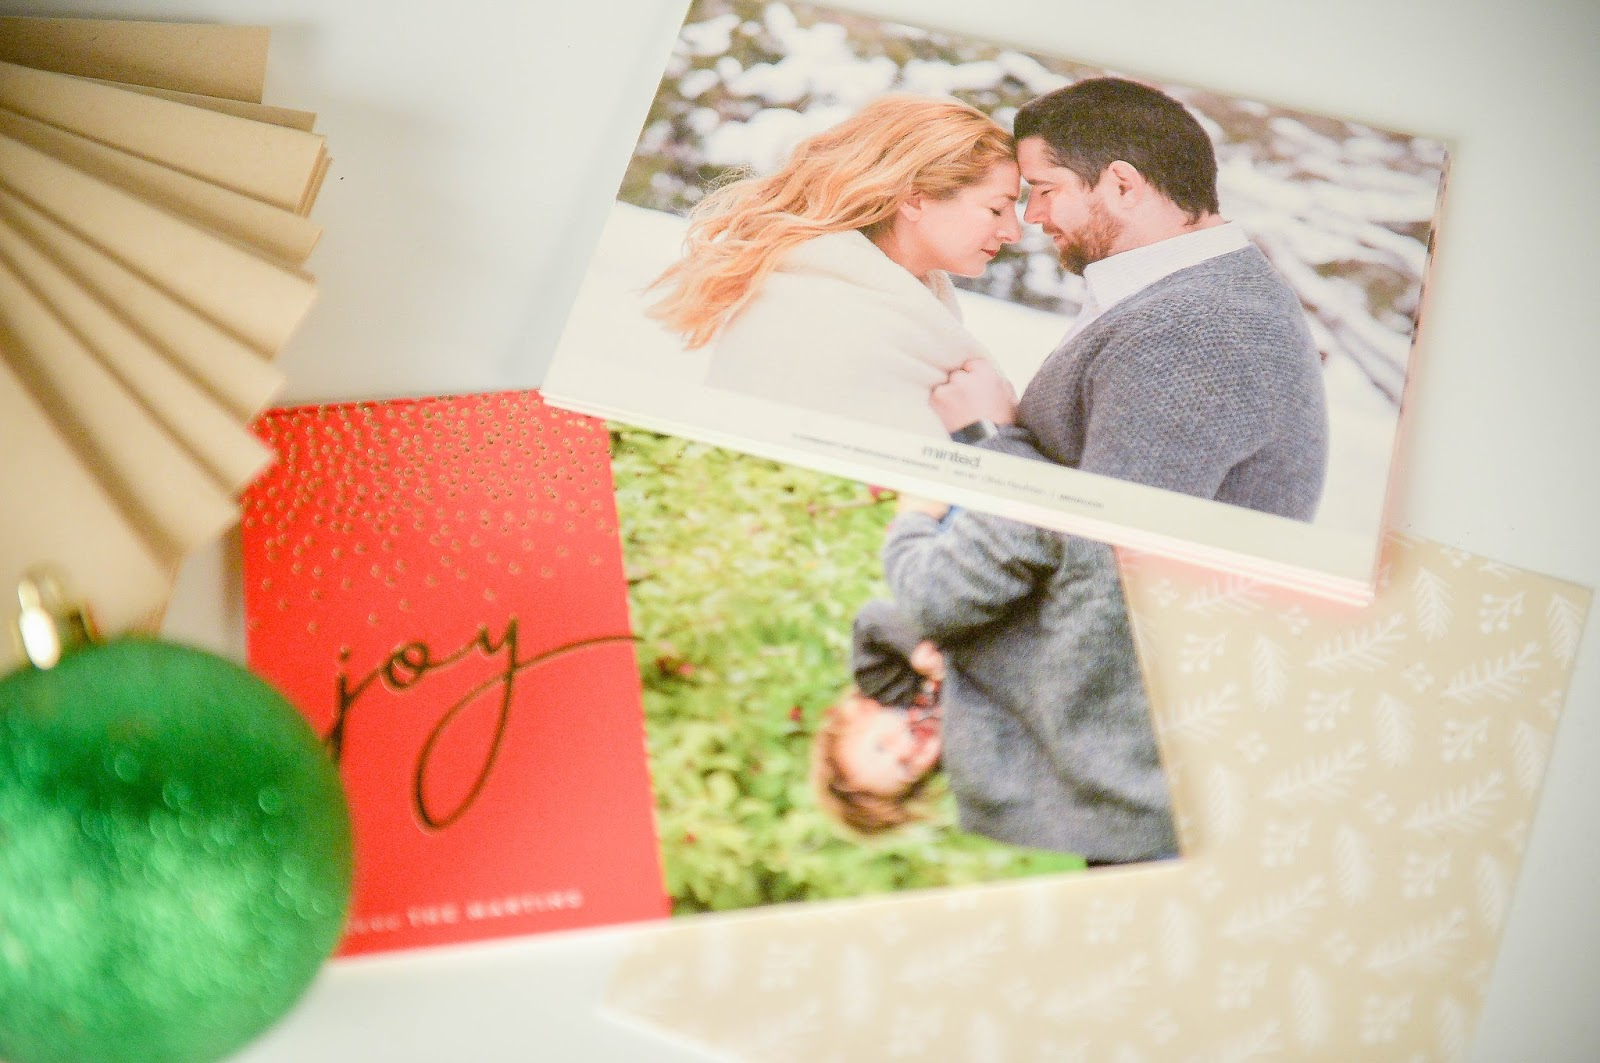 Minted holidays cards